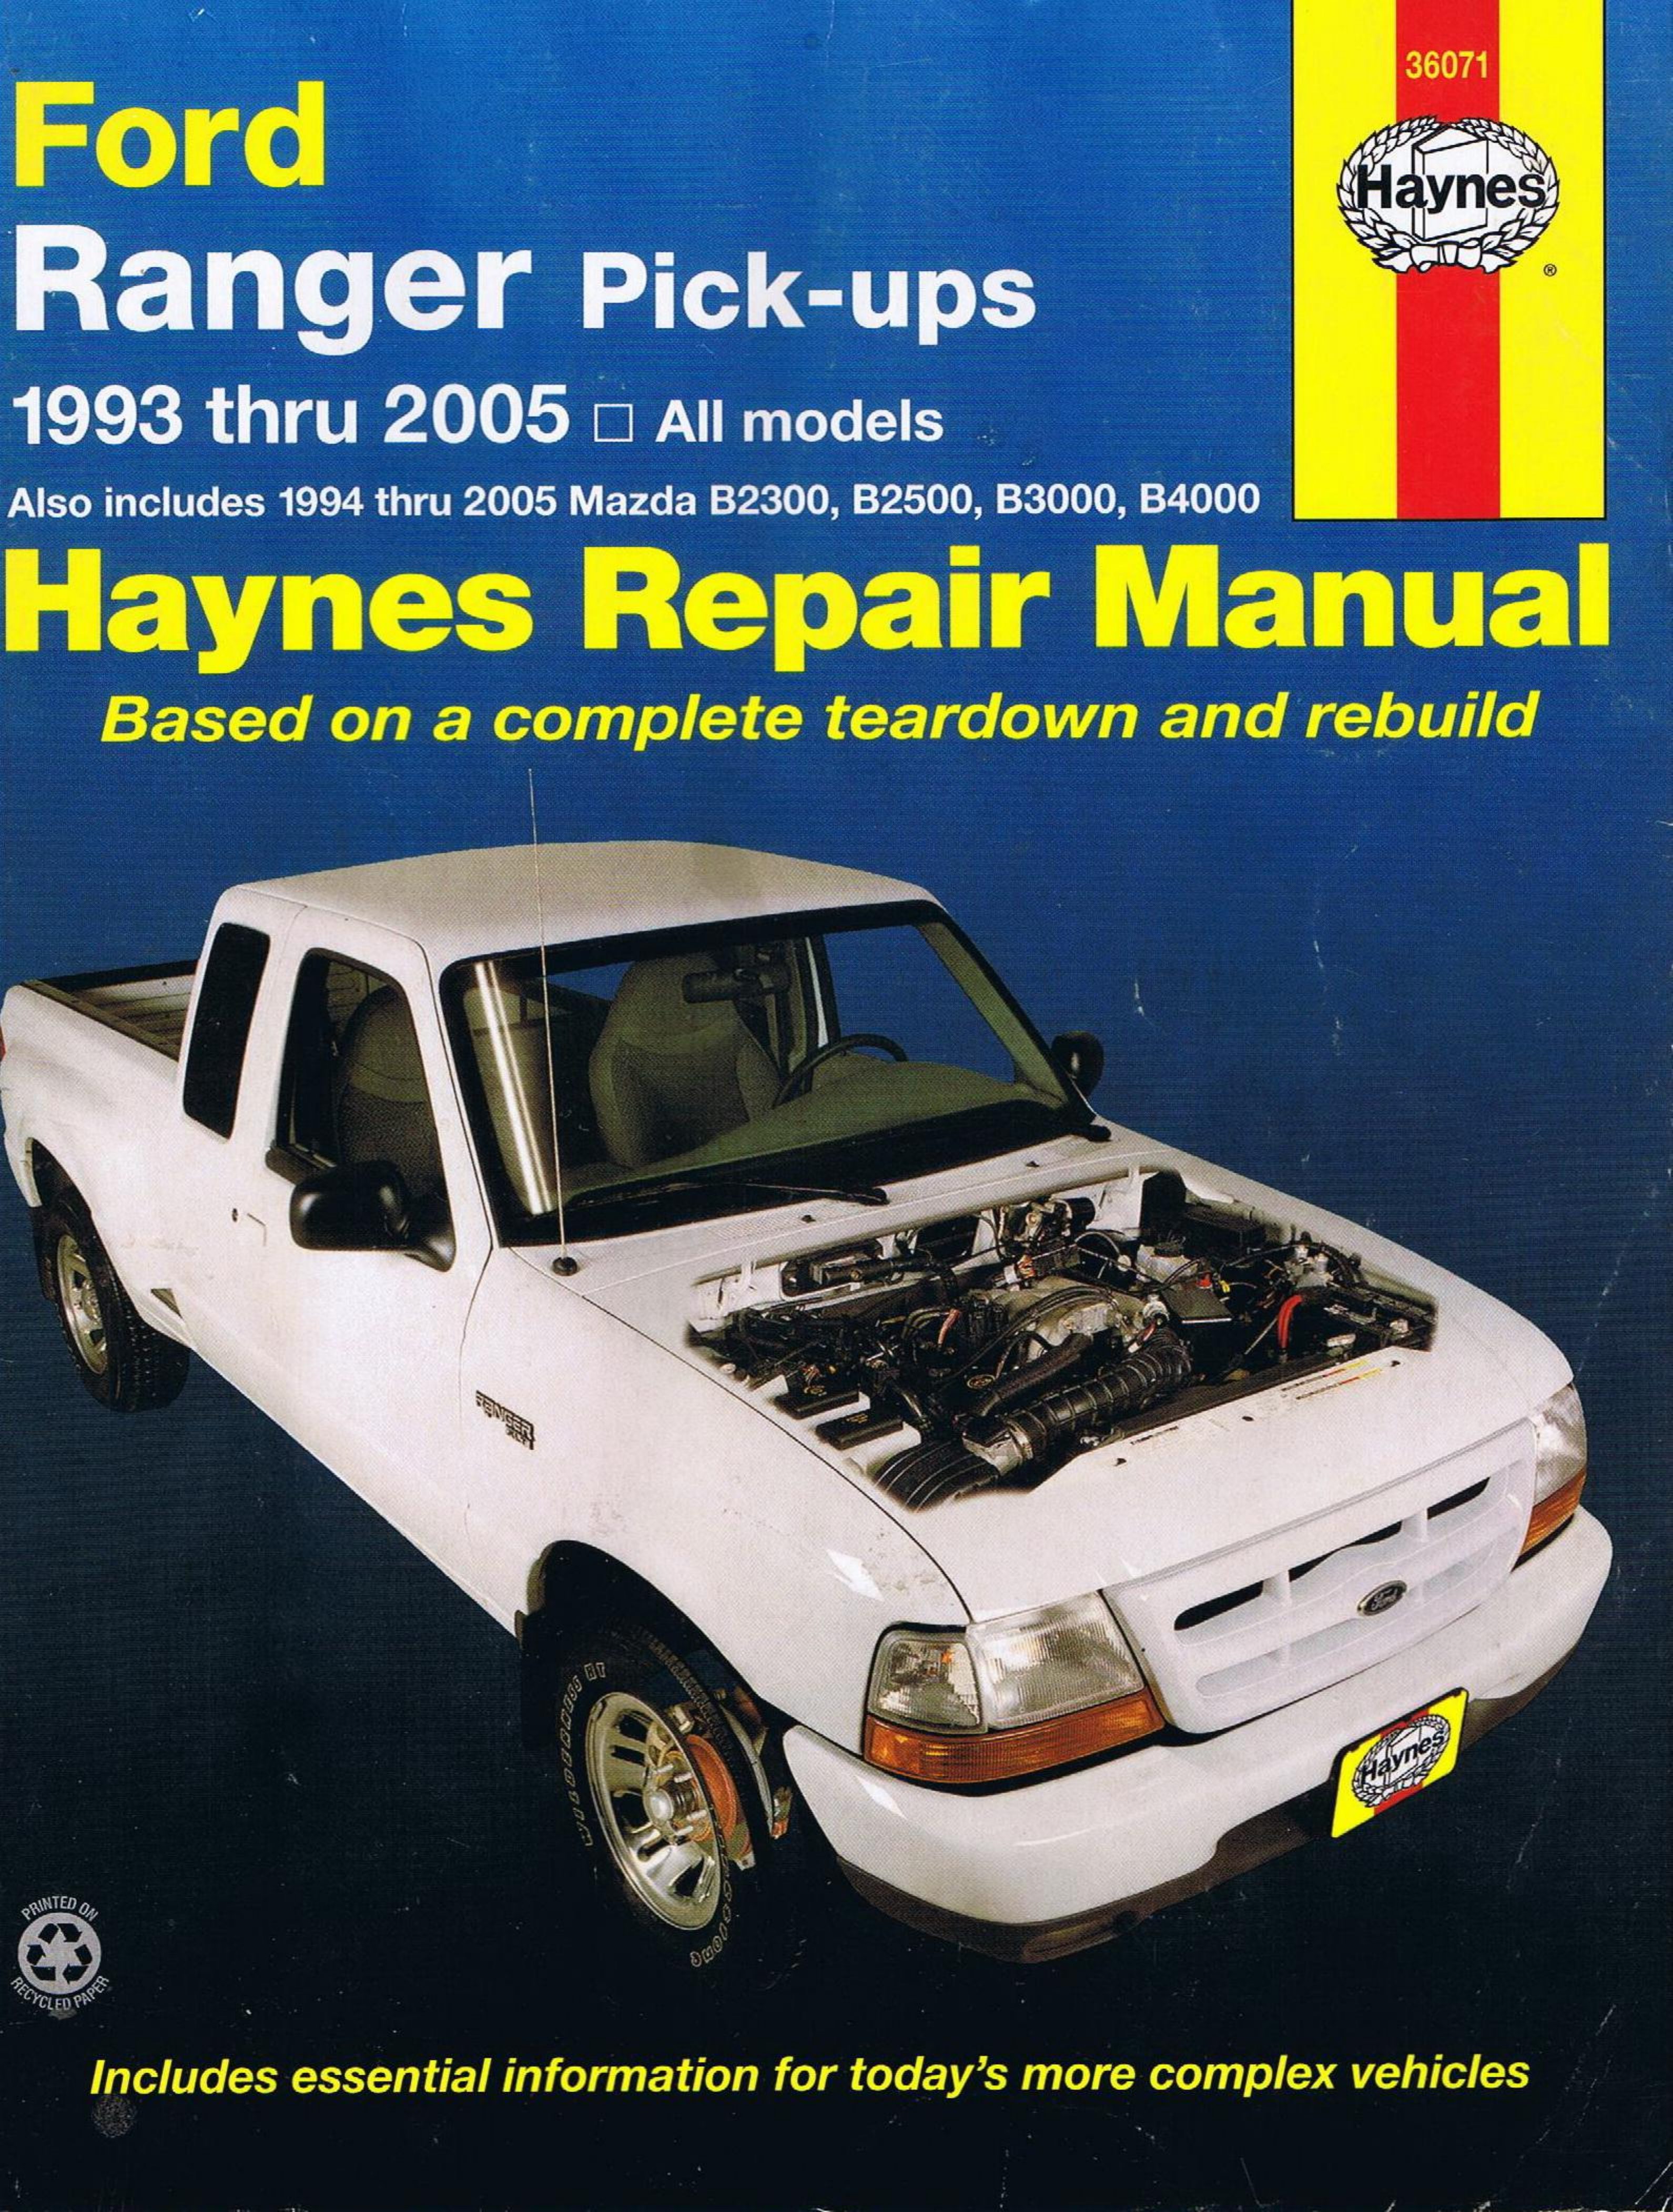 small resolution of ford ranger 1993 2005 service manual pdf